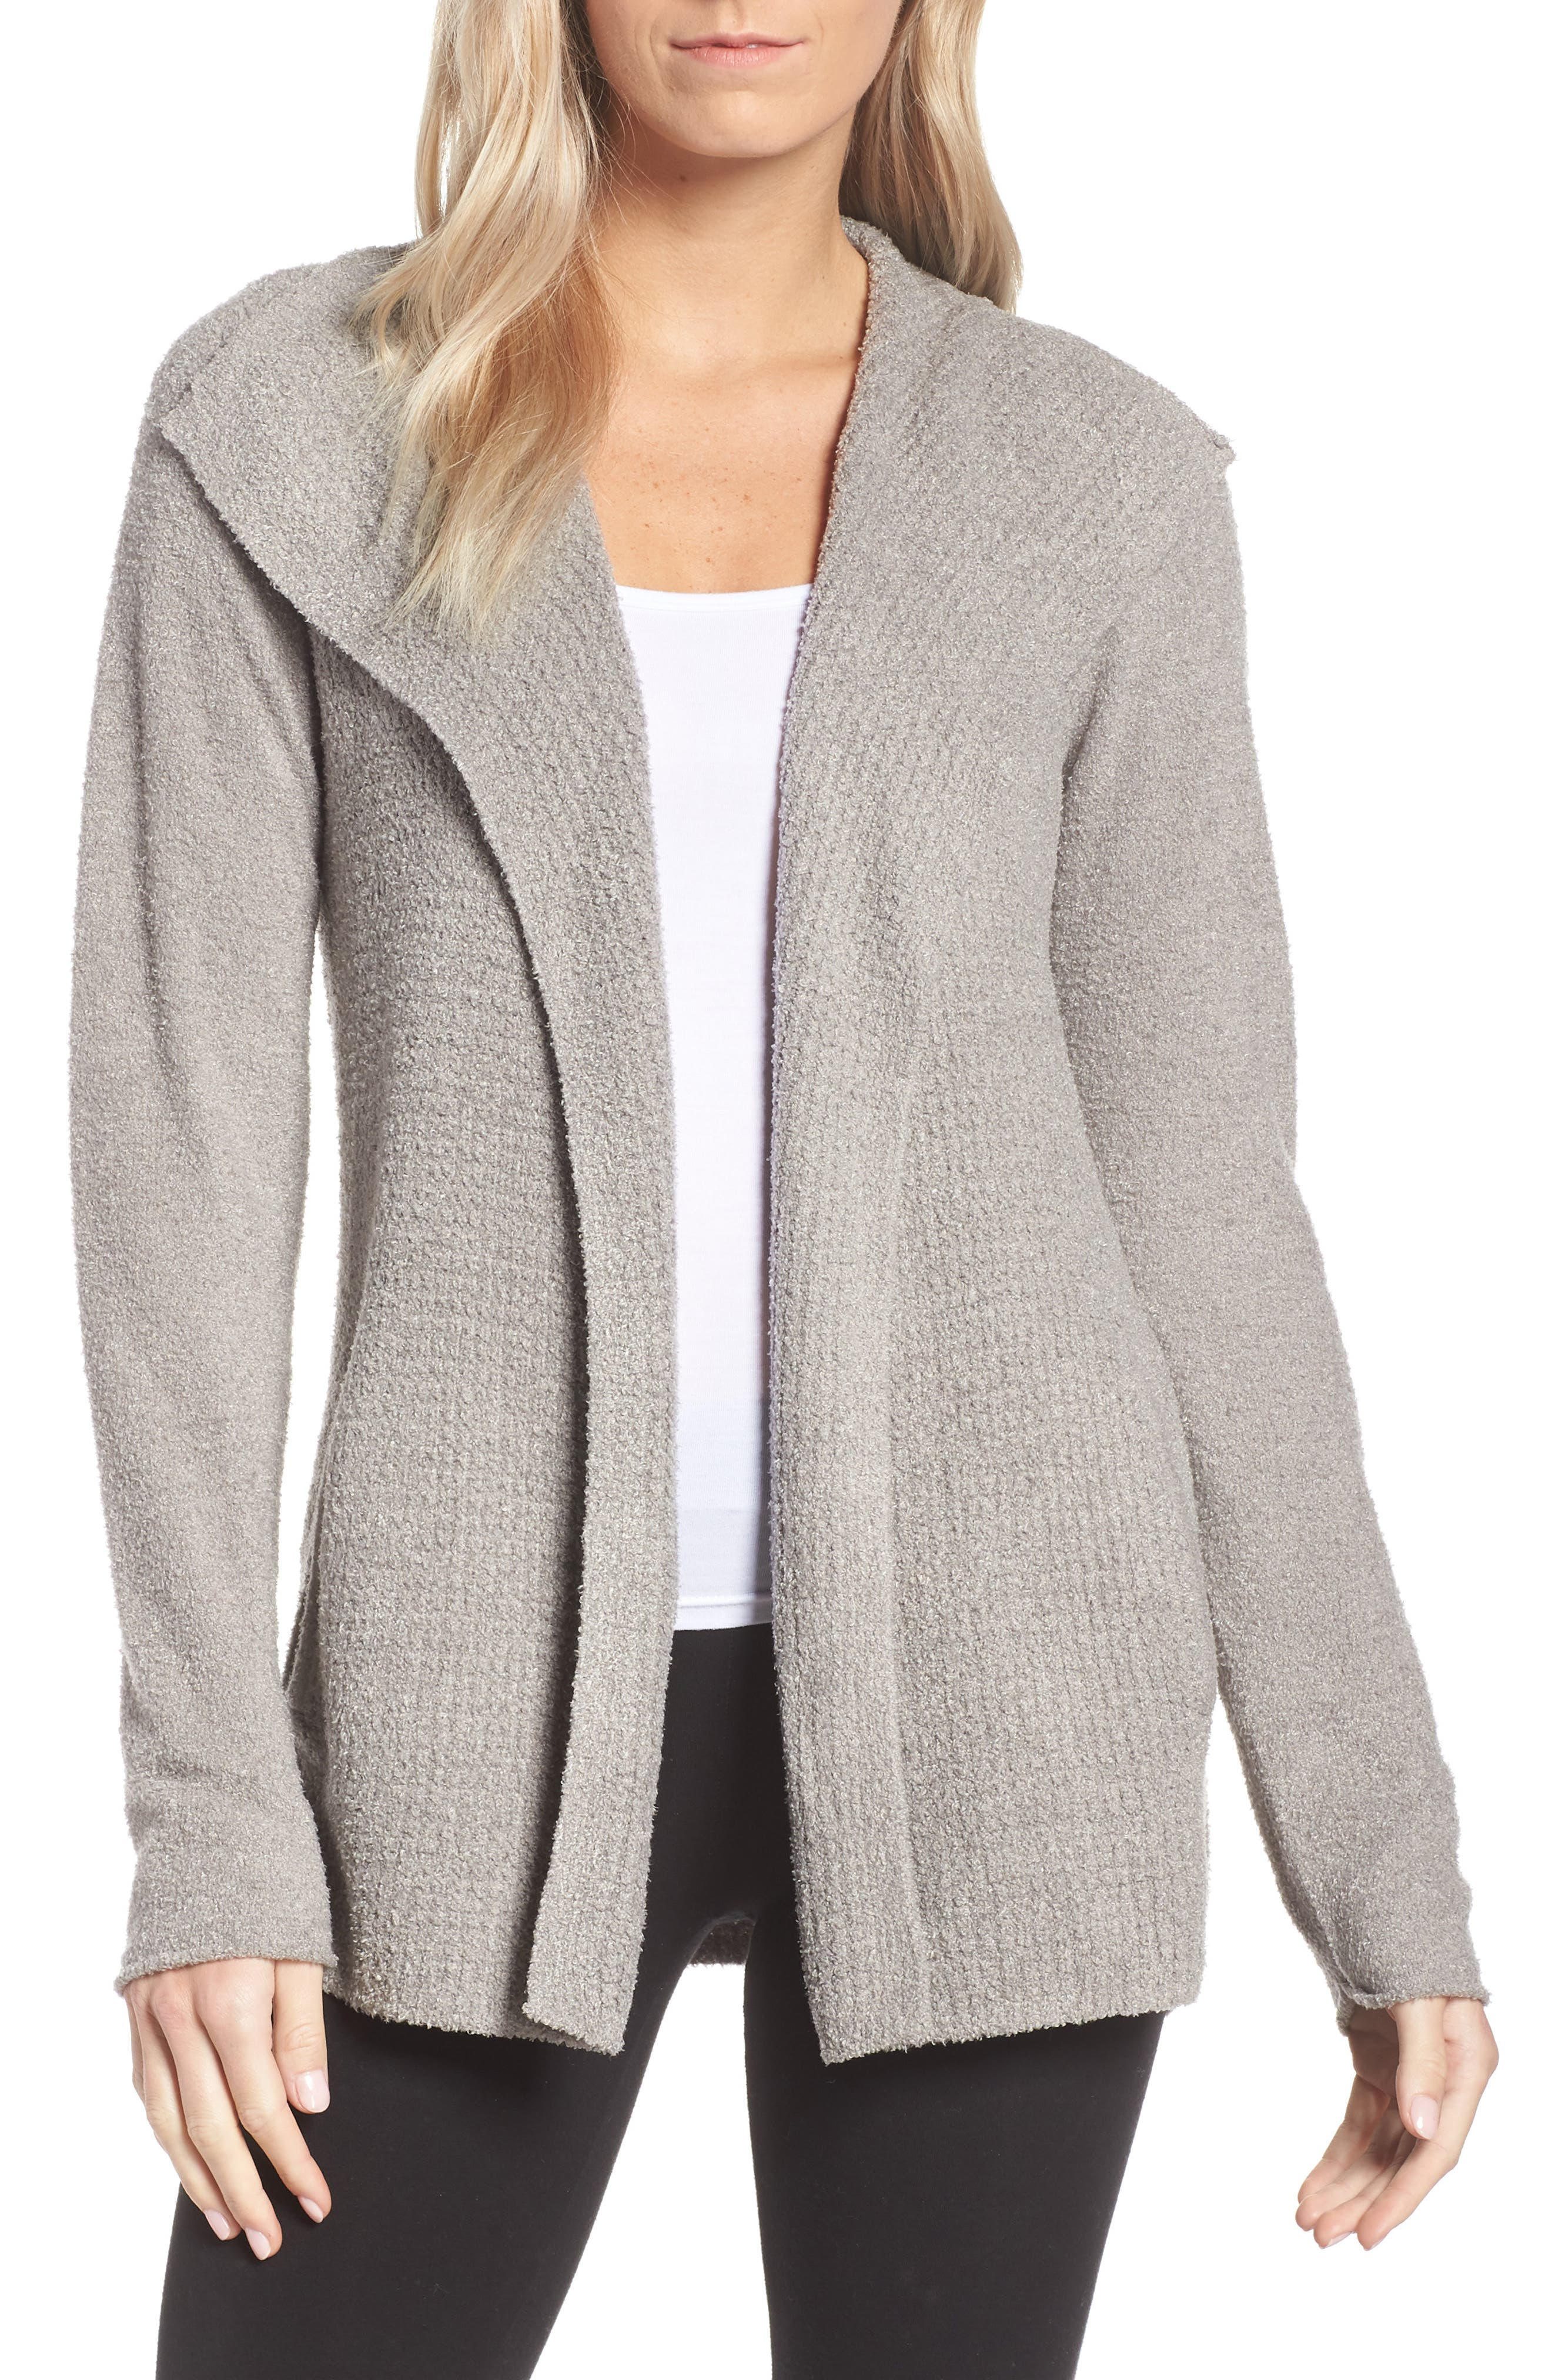 Cozychic<sup>®</sup> Lite Coastal Cardigan,                         Main,                         color, PEWTER